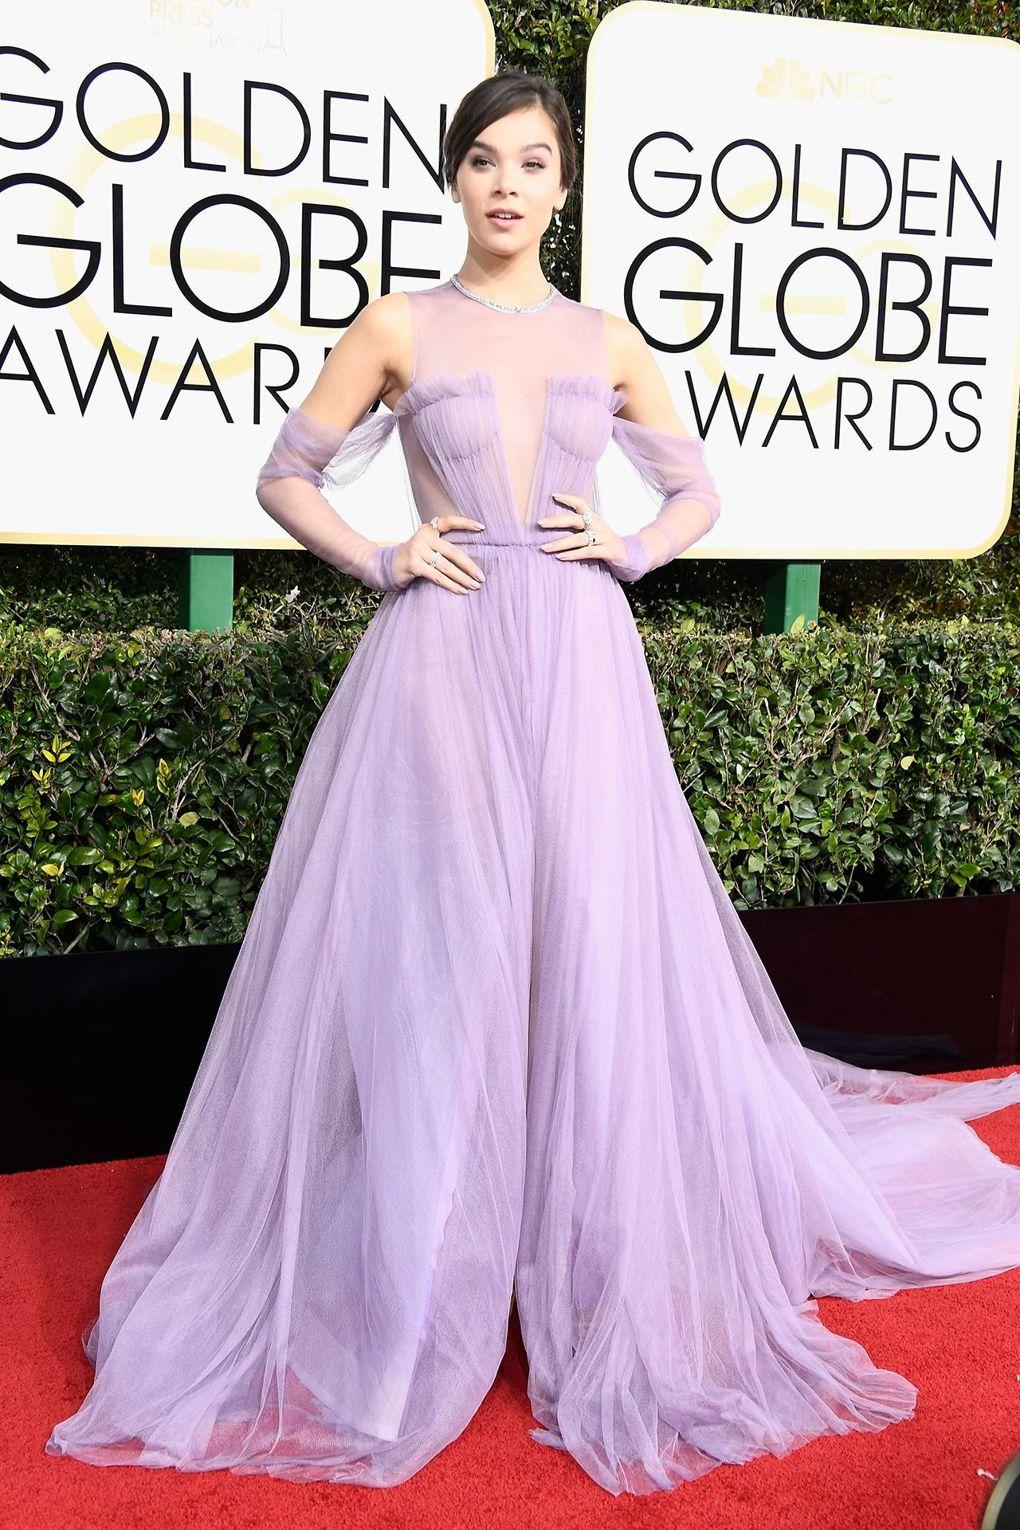 The Best Dressed from Golden Globe Awards - Hailee Steinfeld